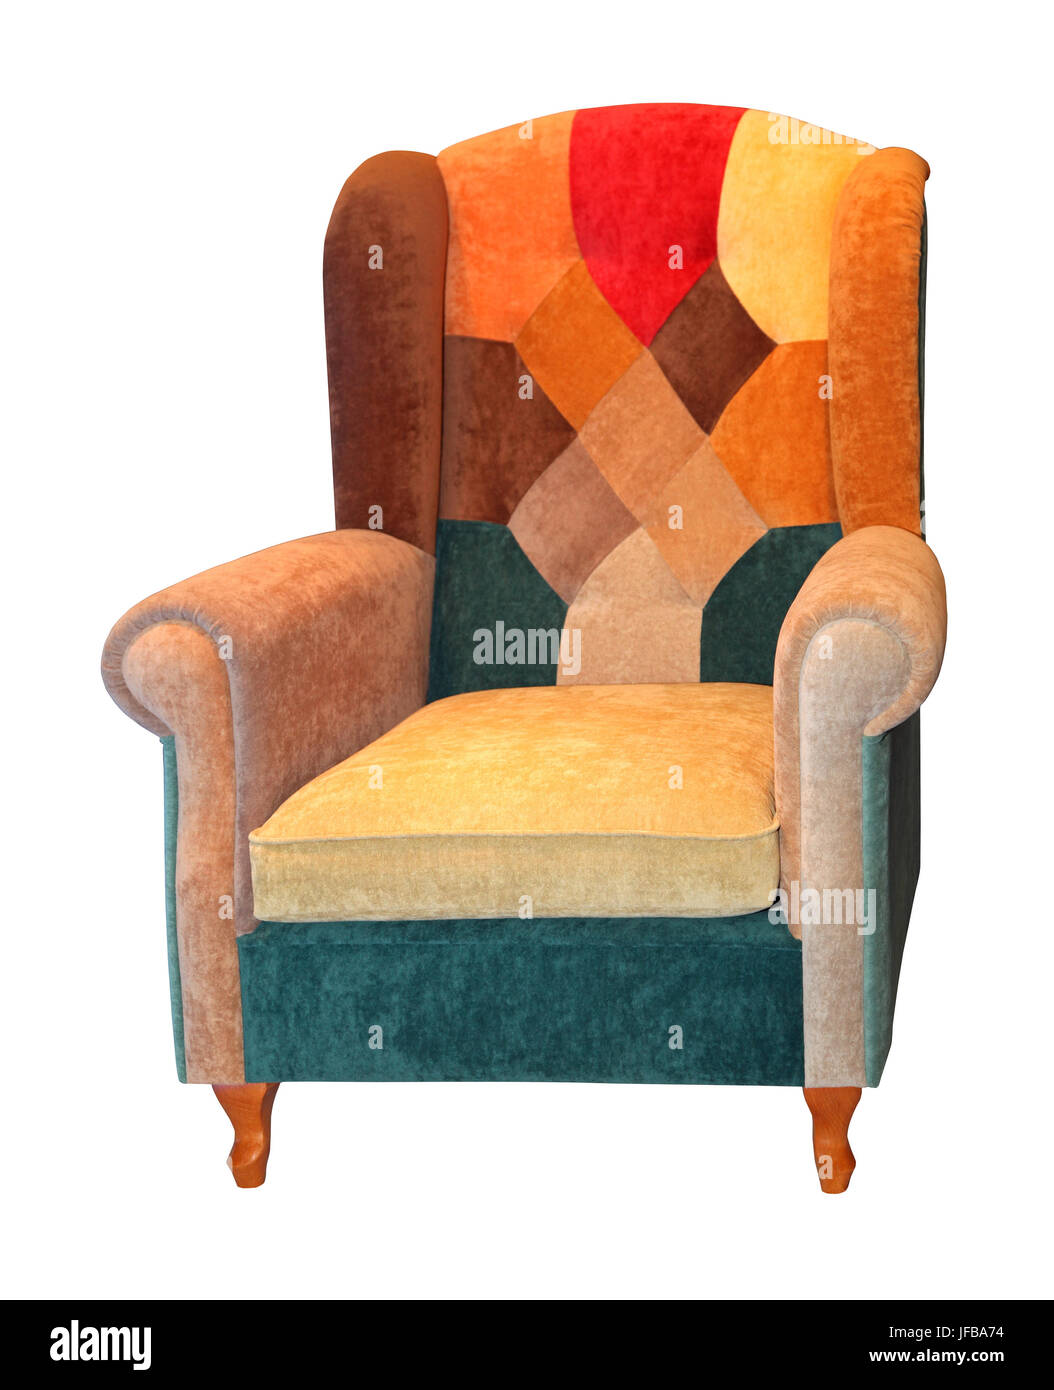 Fauteuil Patchwork Photo Stock